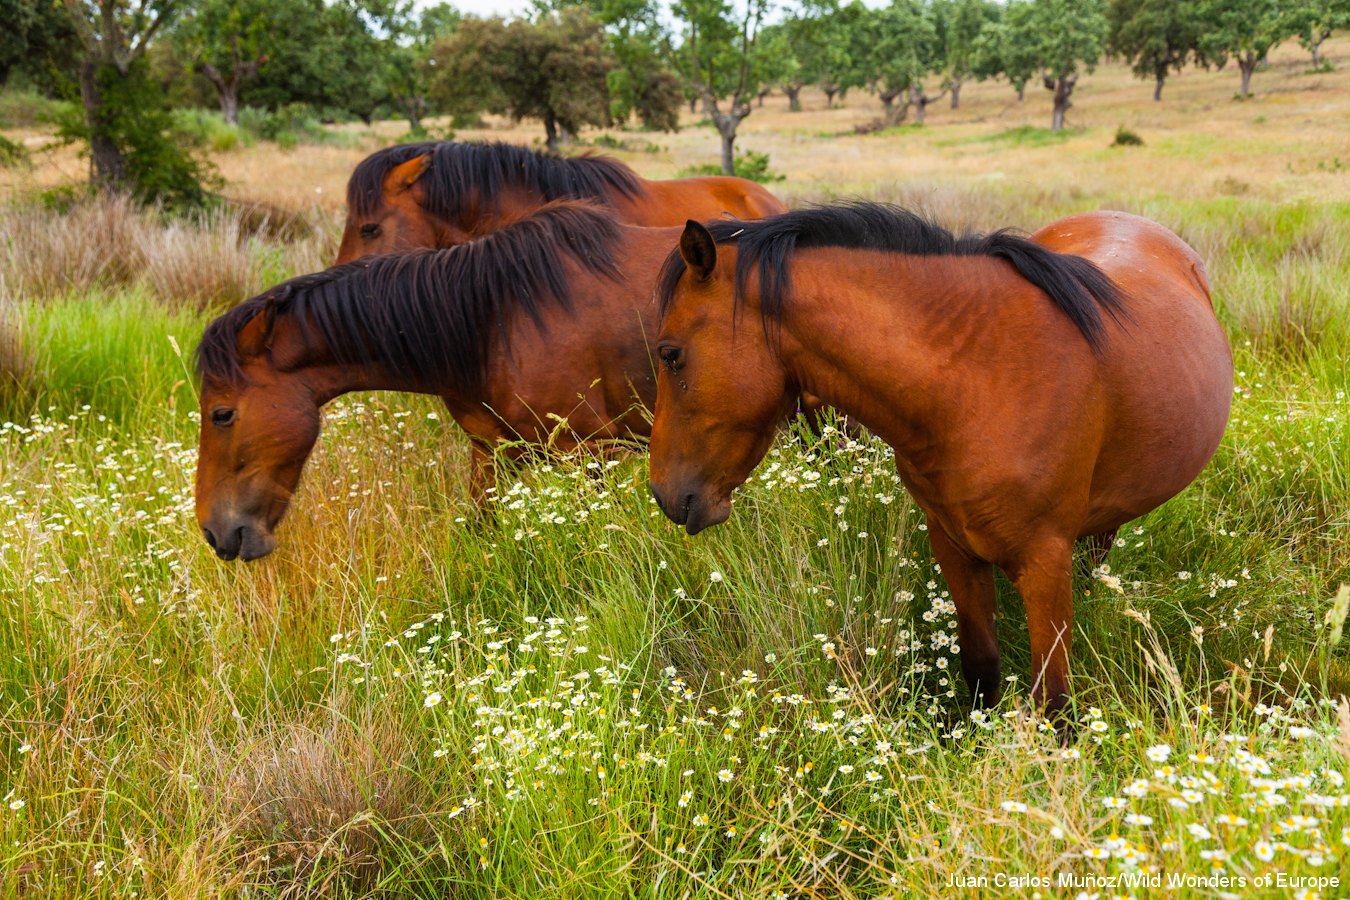 Horse Breed: Retuerta - image via Juan Carlos Muños Robredo/Rewilding Europe - Globetrotting horse riding holidays